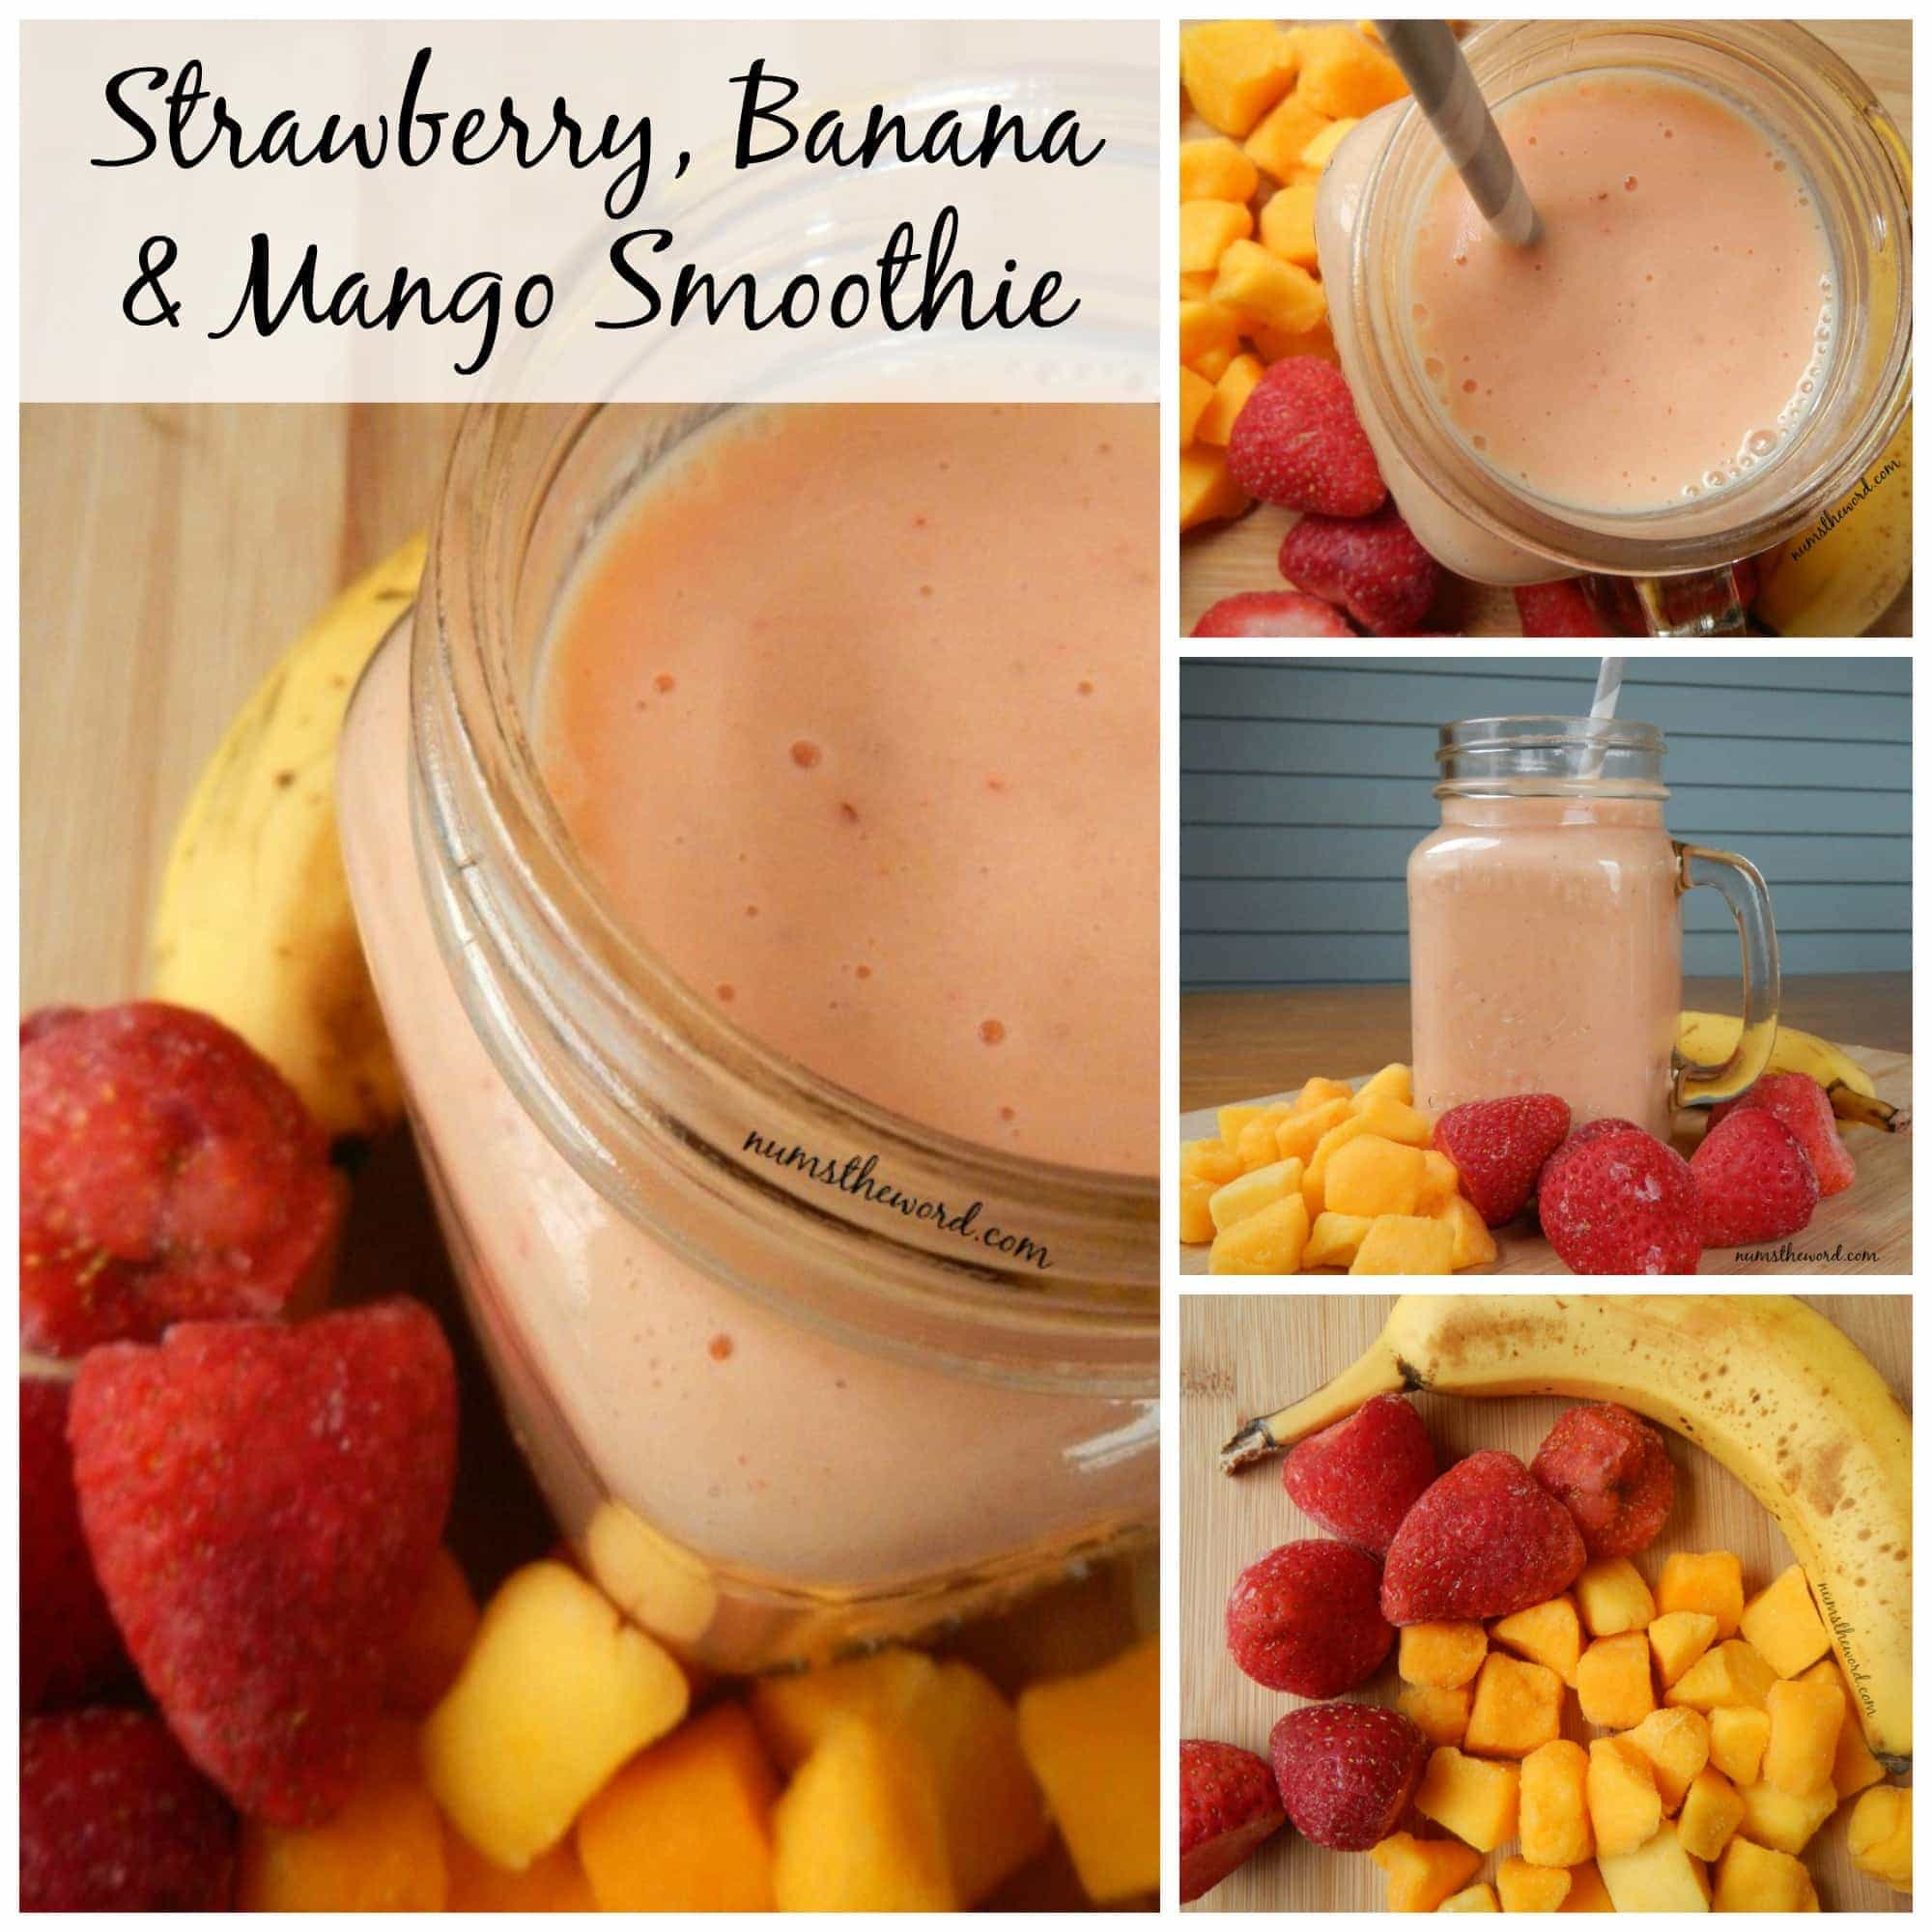 Strawberry, Banana & Mango Smoothie - collage of images for facebook